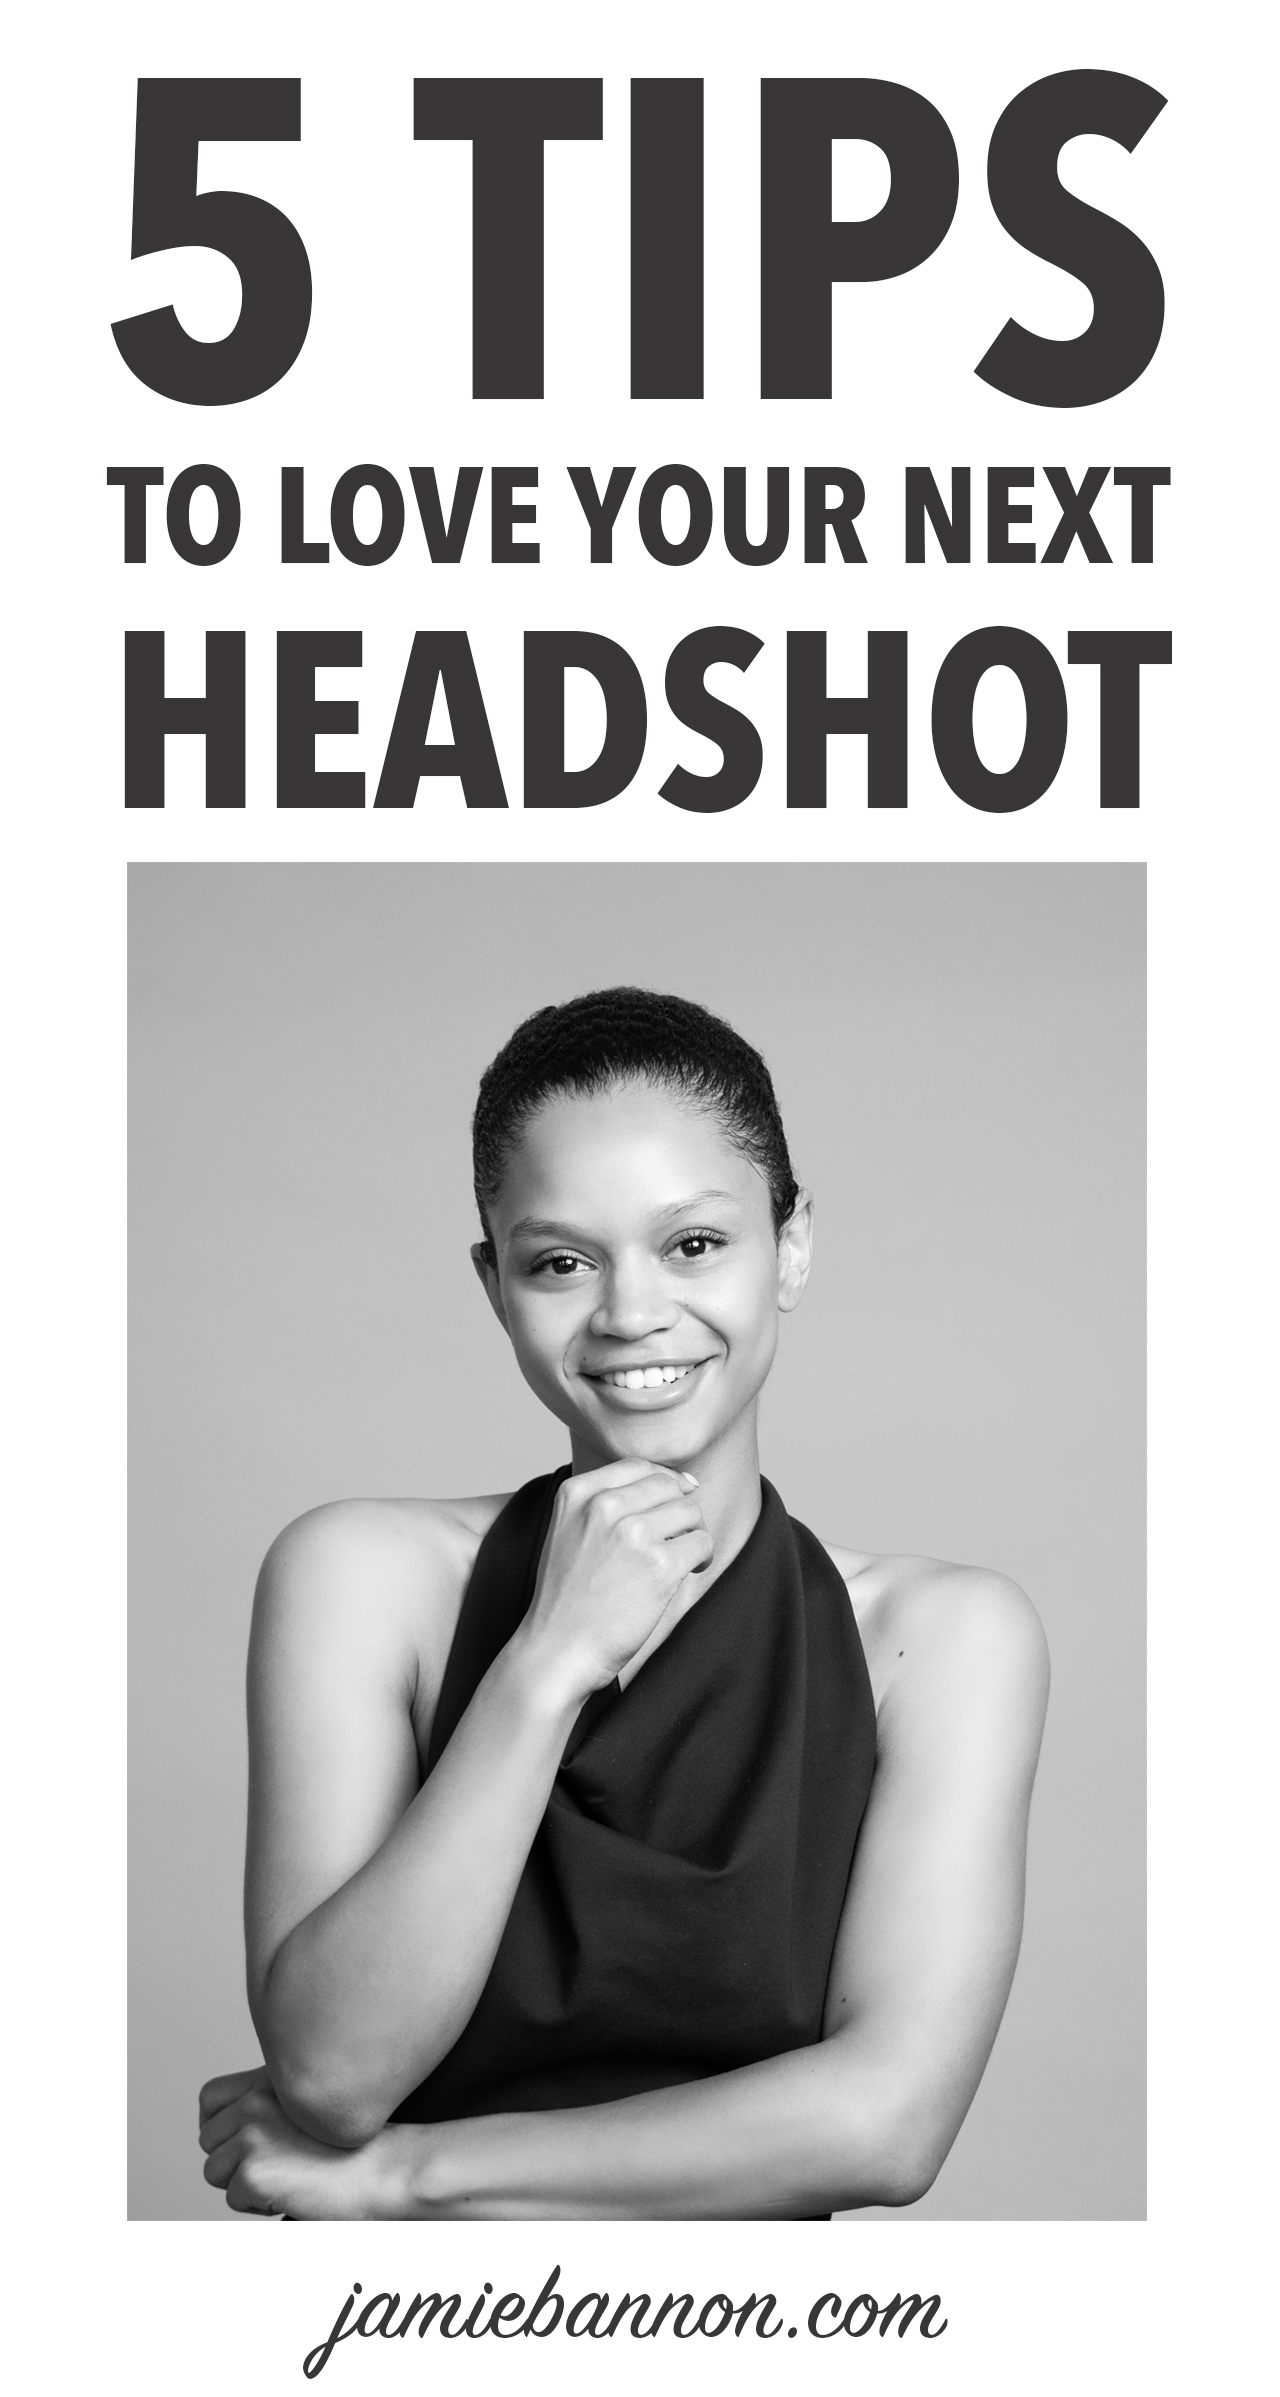 head over to jamiebannon.com to learn 5 tips to make sure you'll LOVE your next headshot!